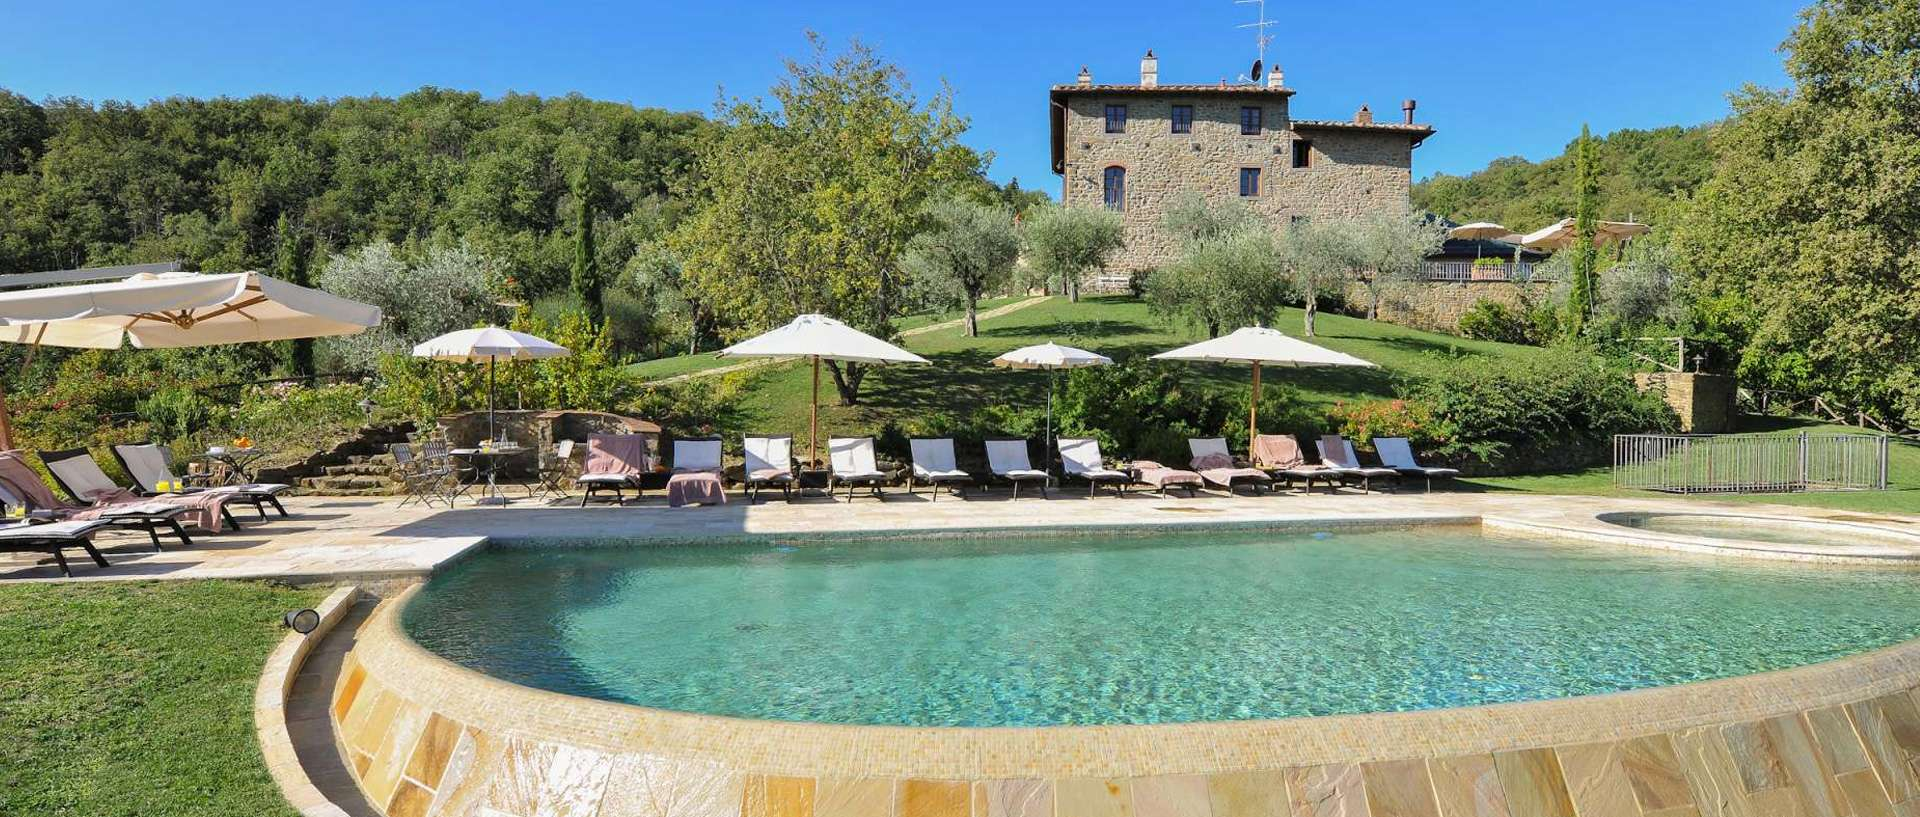 5 Villas for a Family Reunion in Tuscany